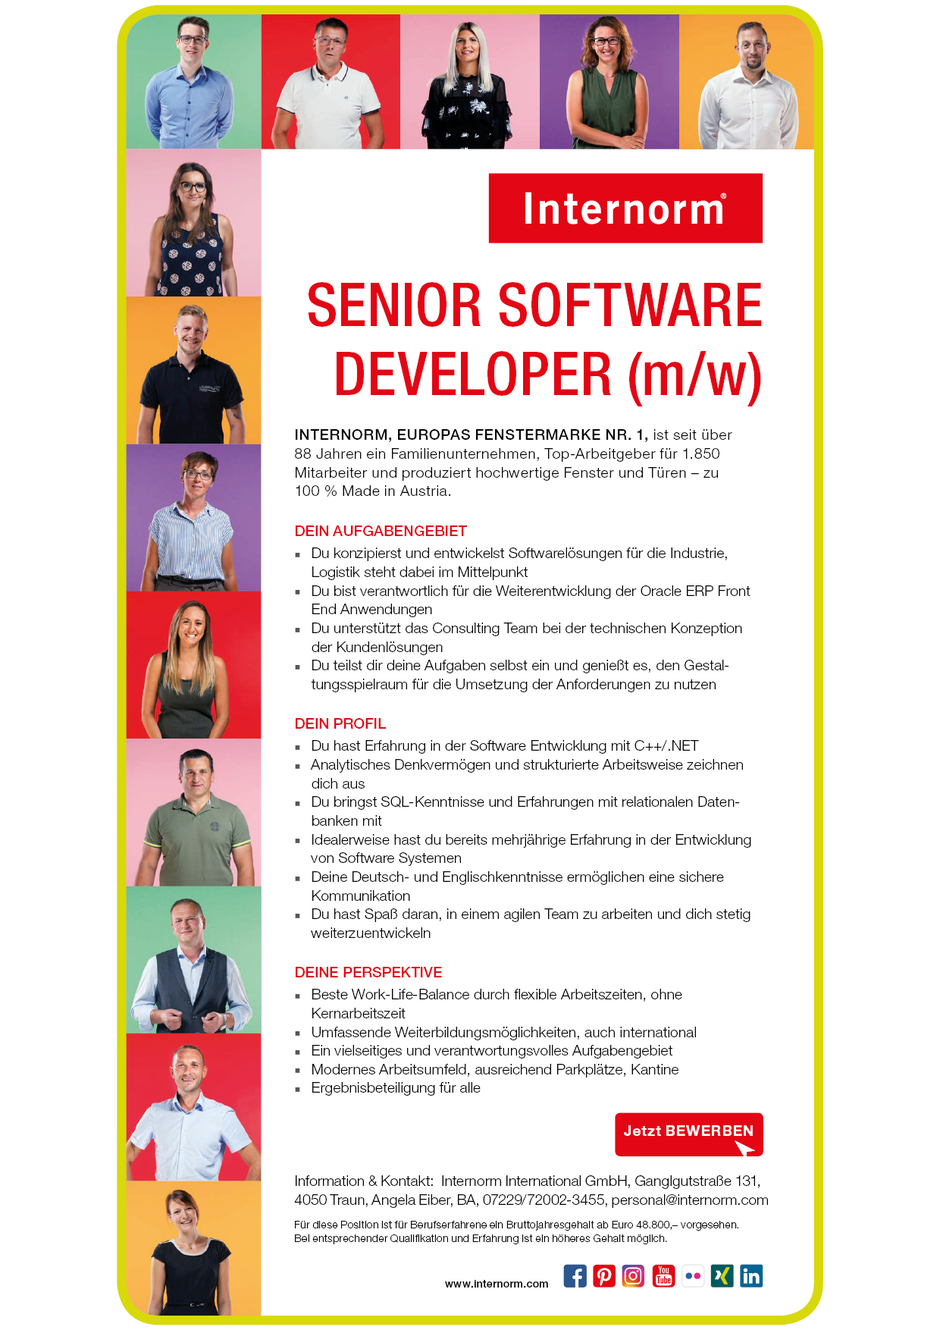 Software Developer Jobs - Senior Software Developer - Internorm - Traun - Oberösterreich -1